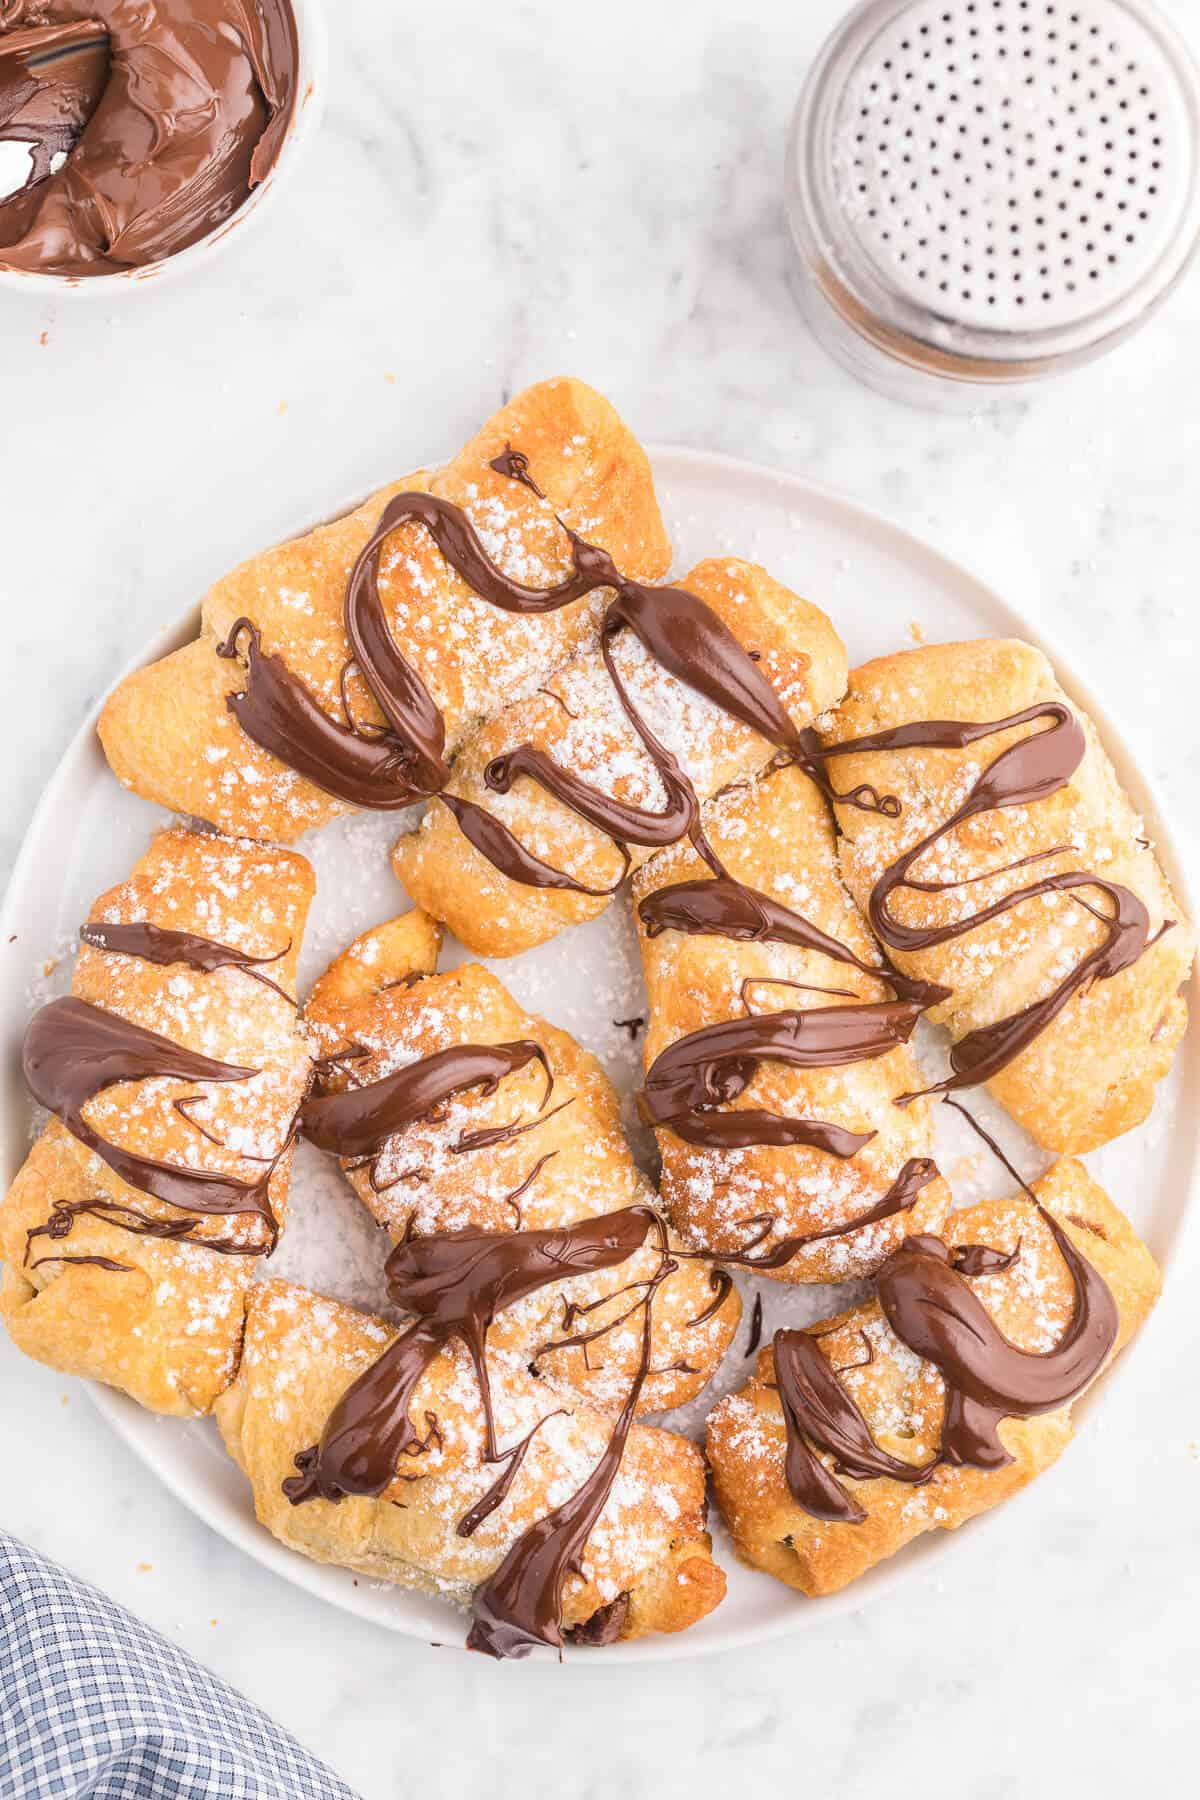 Air Fryer Chocolate Crescent Rolls Recipe - Make these chocolate stuffed crescent rolls in your air fryer. Wrap Pillsbury crescent roll dough around a spoonful of sweet and rich Nutella. Ready to eat in minutes! Such a delicious and easy dessert everyone loves.